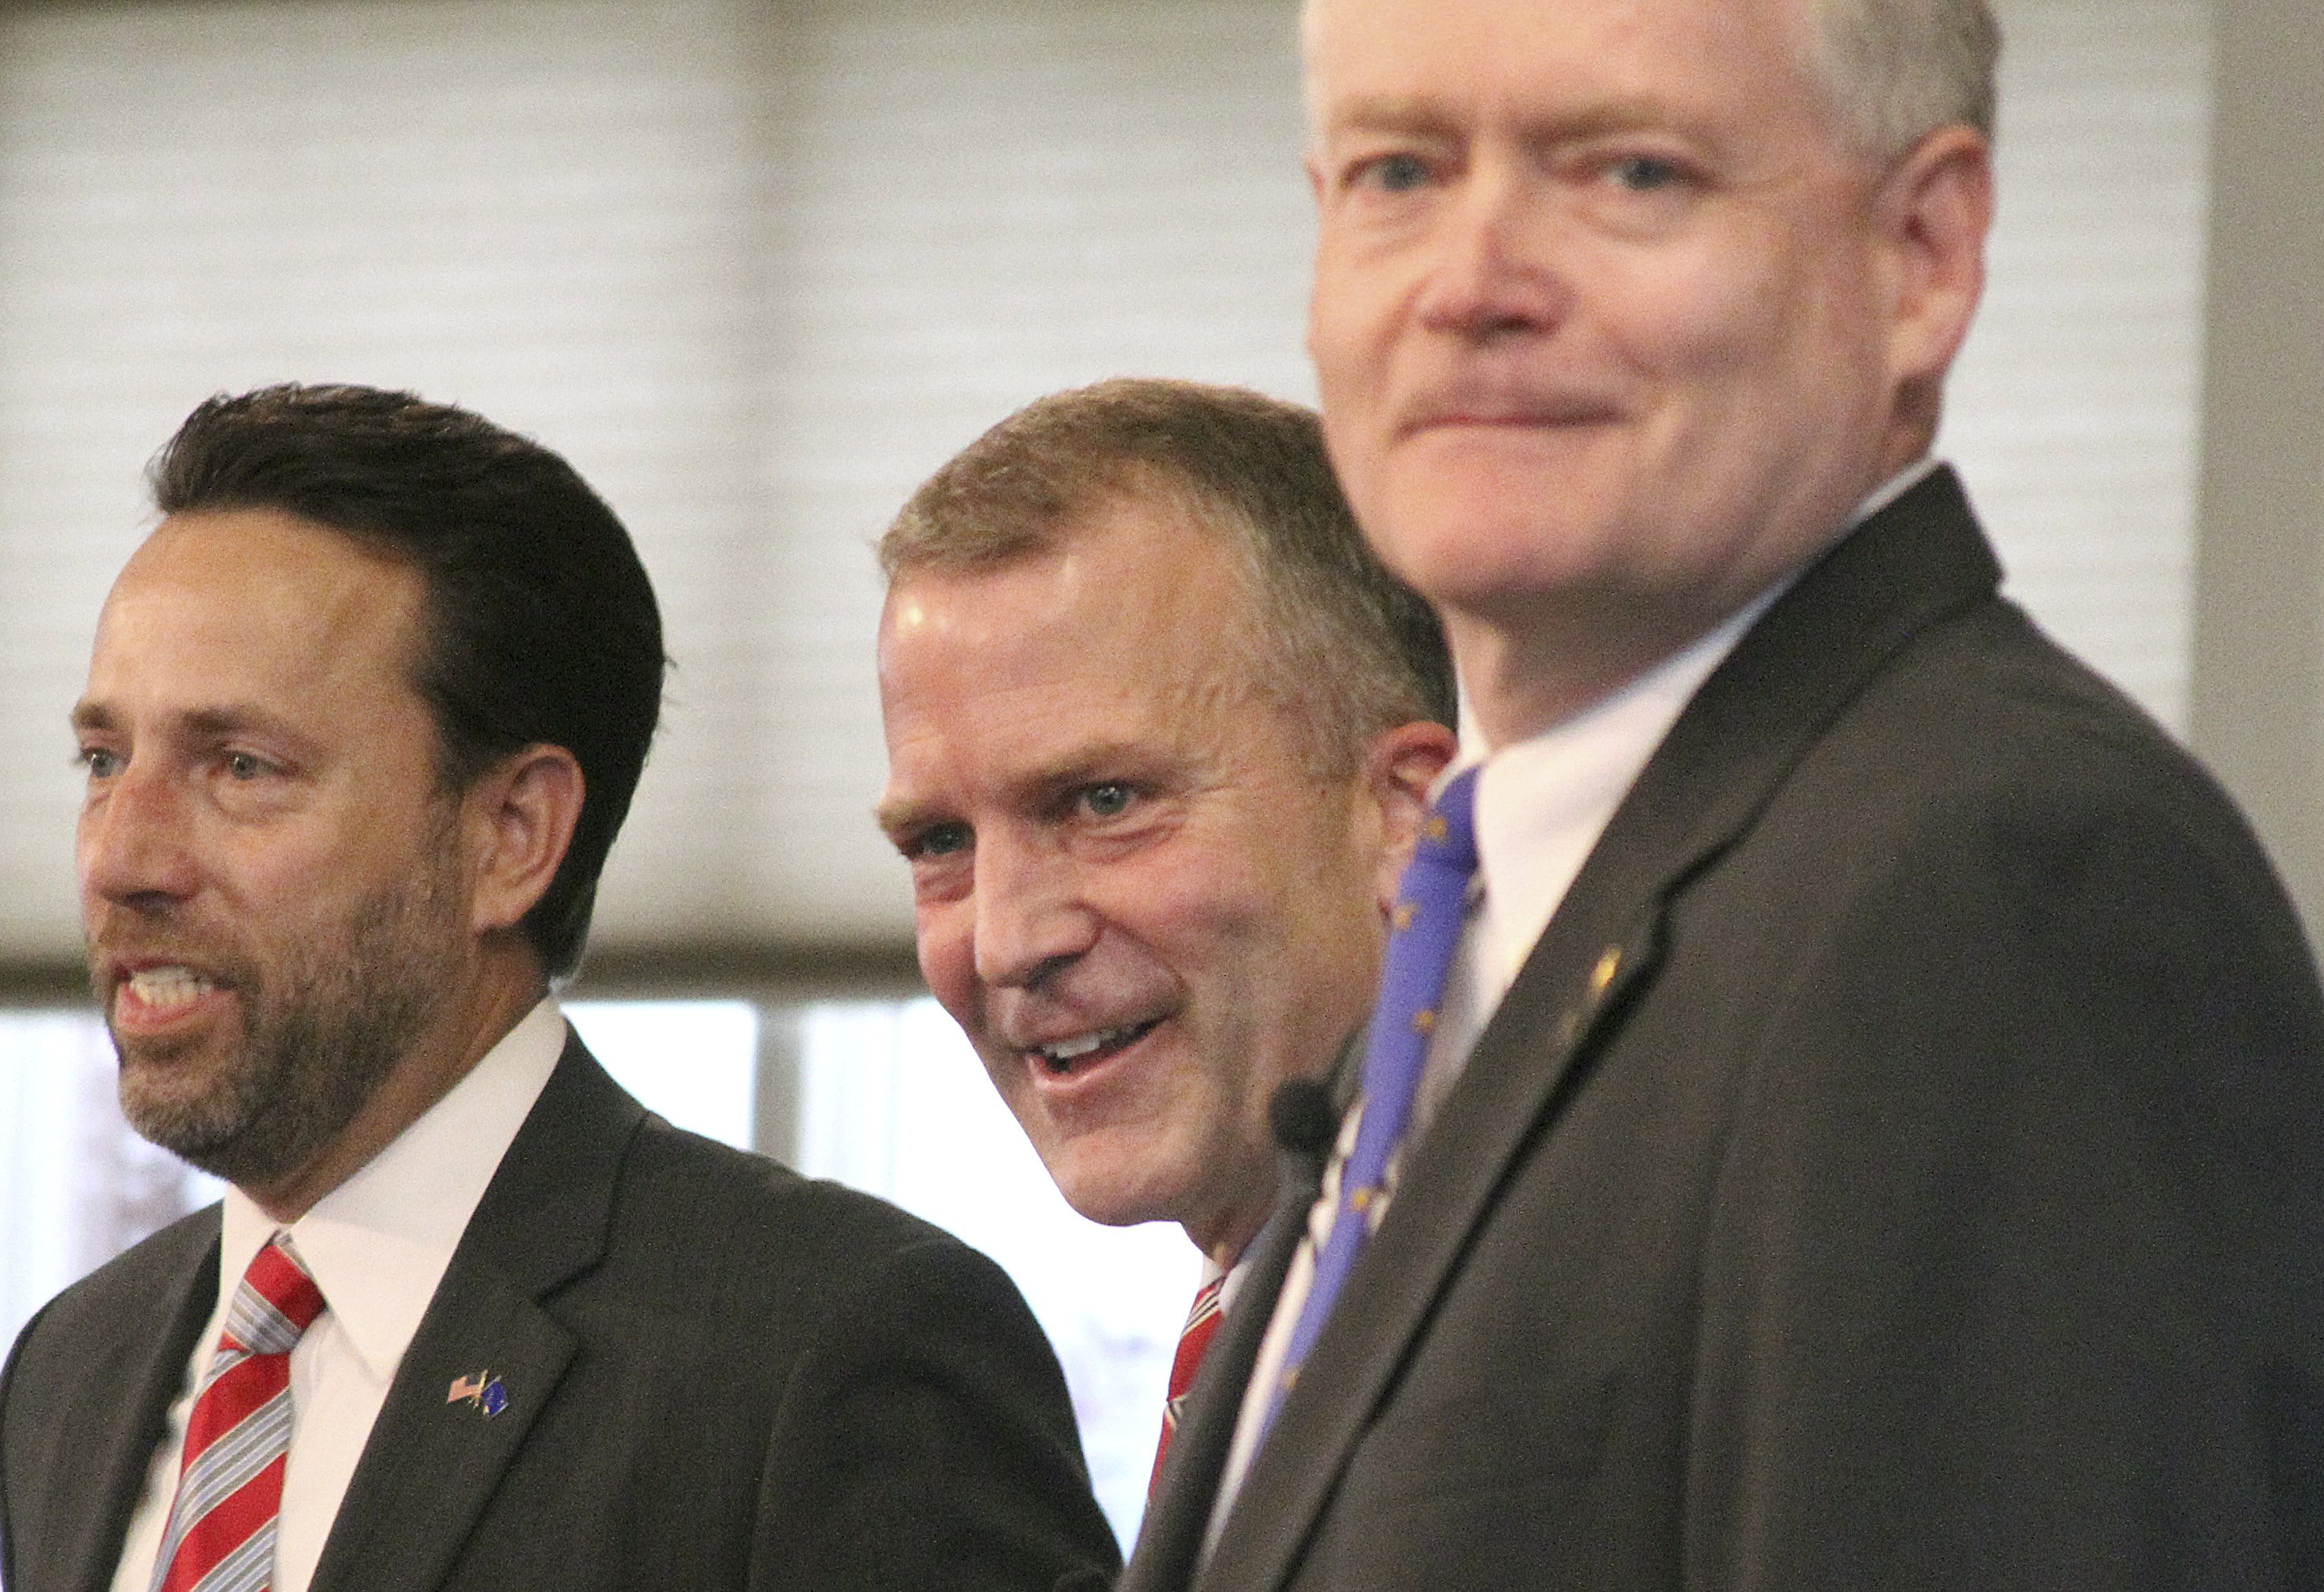 From left, U.S. Senate Republican candidates Joe Miller, Dan Sullivan and Lt. Gov. Mead Treadwell take part in a debate in Eagle River, Alaska on Aug. 4, 2014.